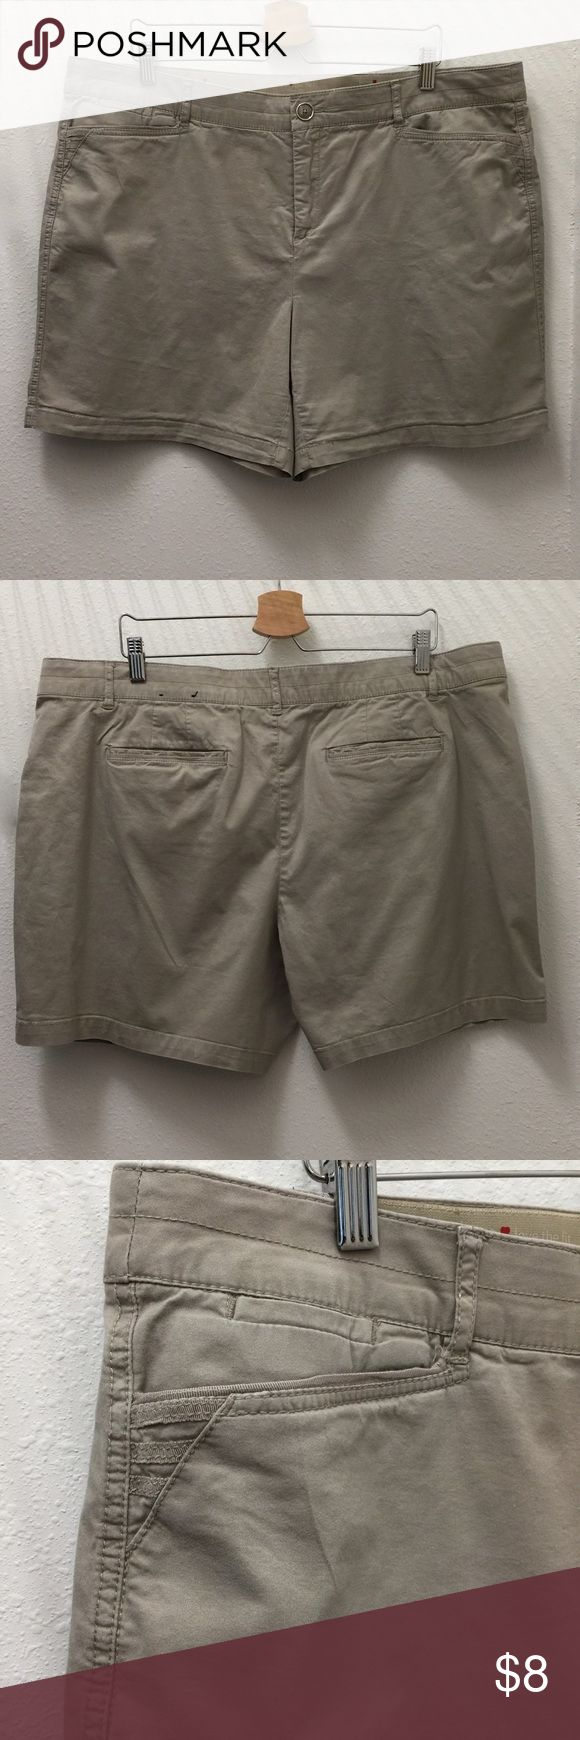 "Beige Shorts Casual and comfortable, comfort waist. Slight wear, see fourth picture. Inseam 6"". intro. love the fit Shorts Bermudas"